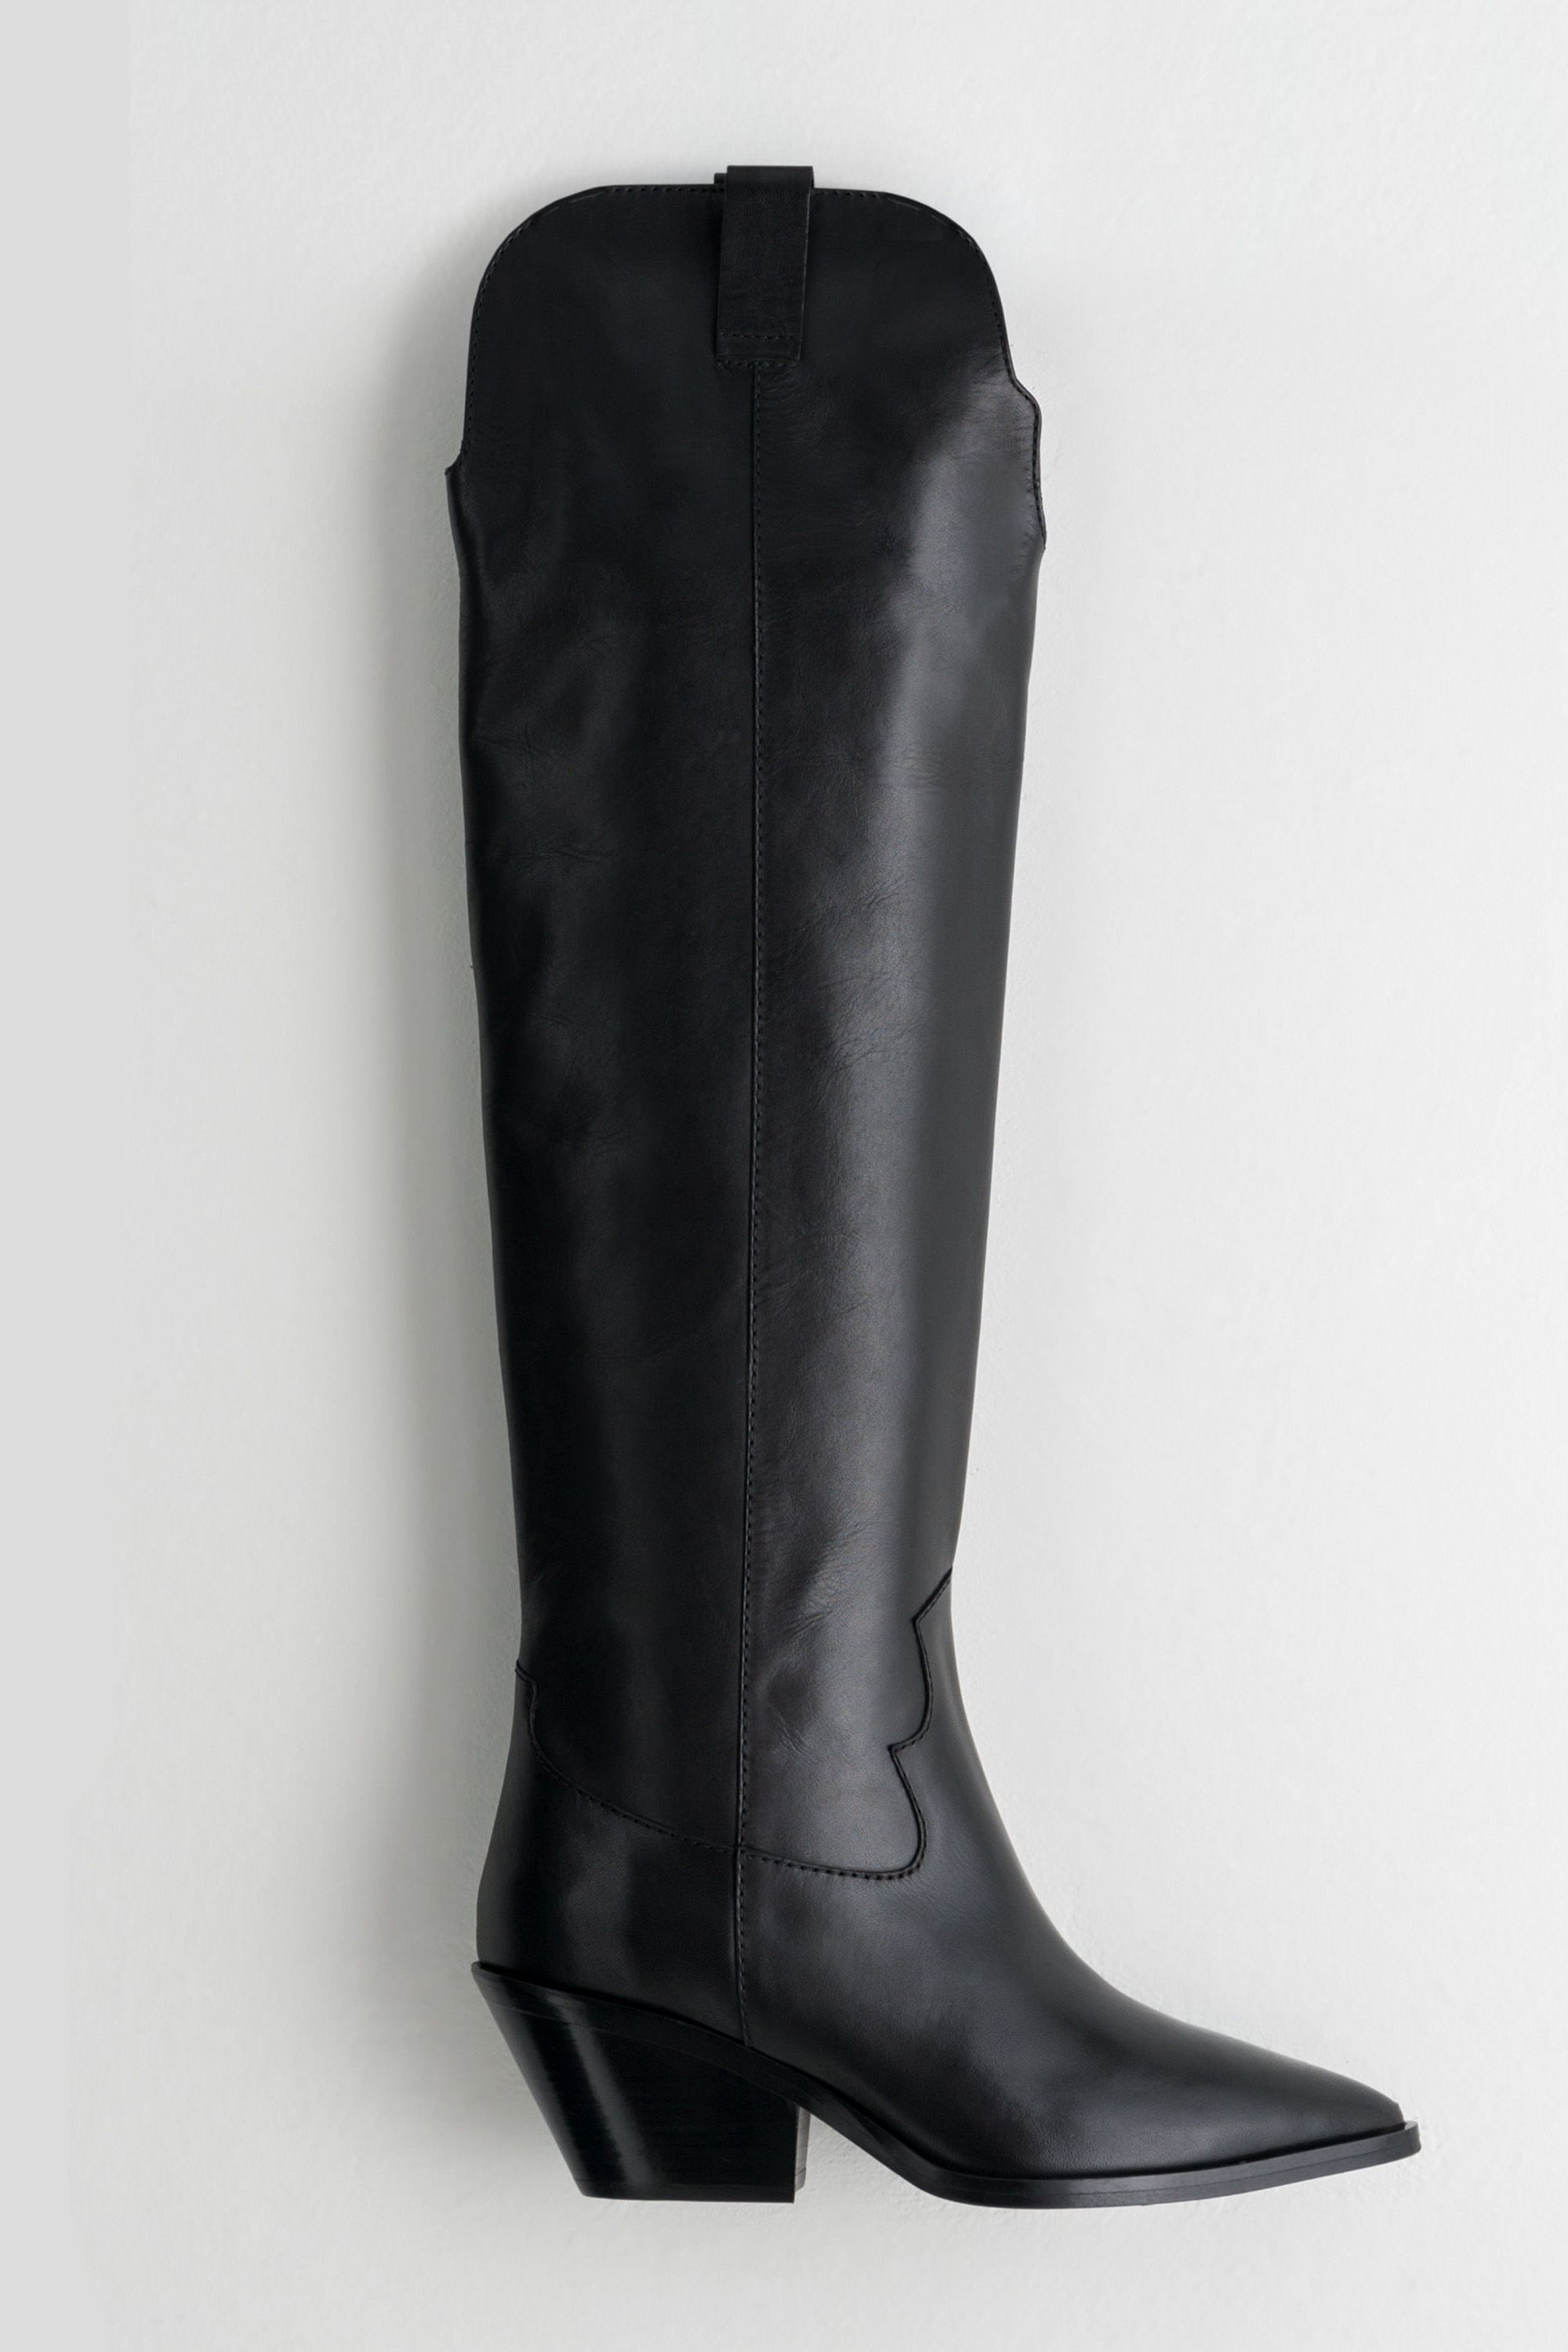 ee101791efc Best over-the-knee boots | Best thigh-high boots